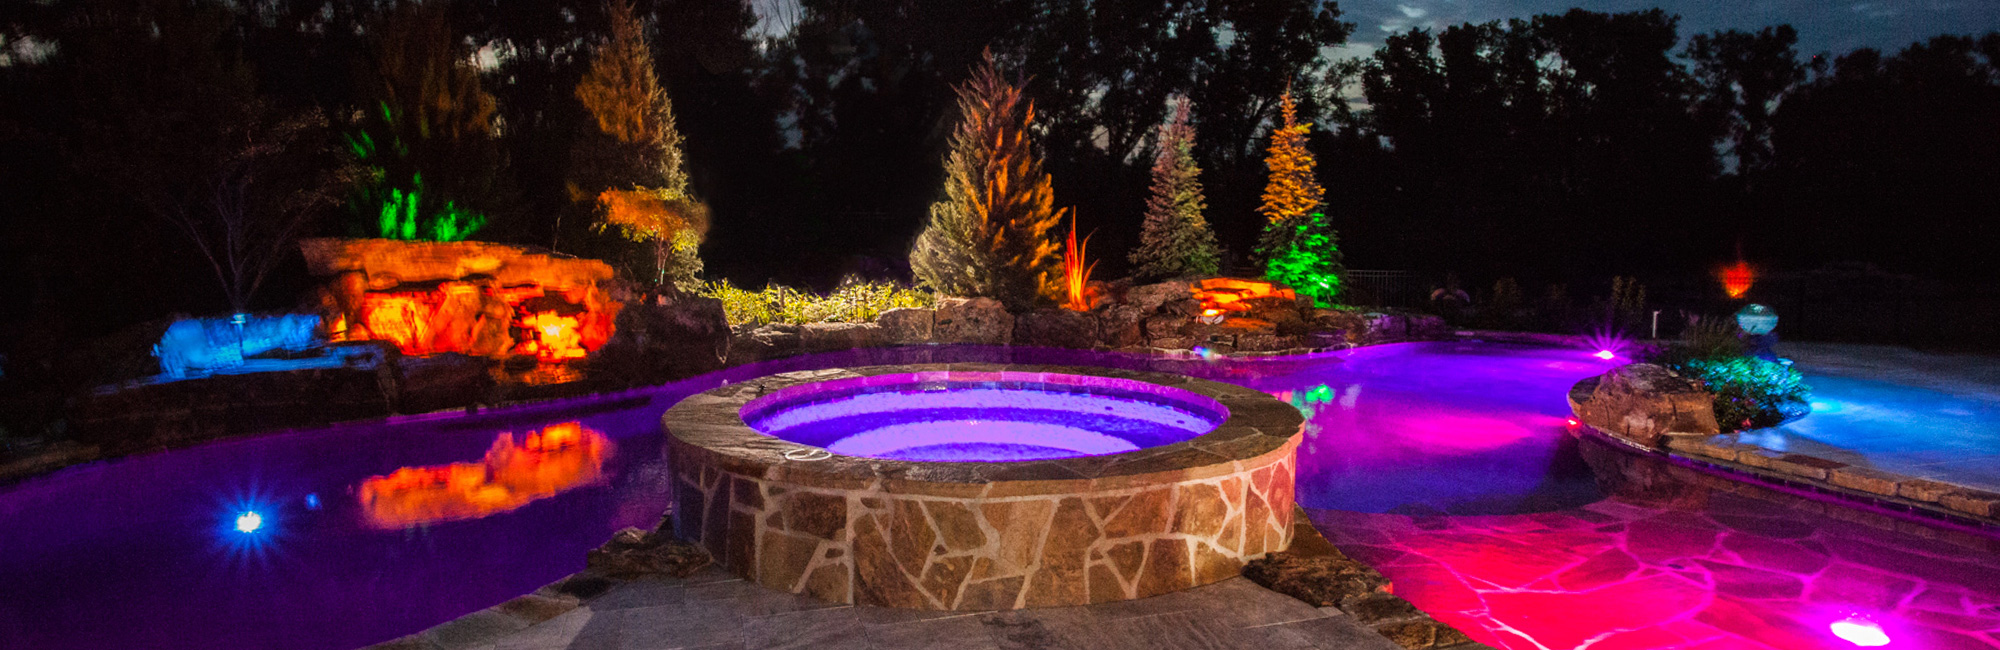 lm-custom-pools-wichita-kansas-homepage-custom-pools-image-NEW